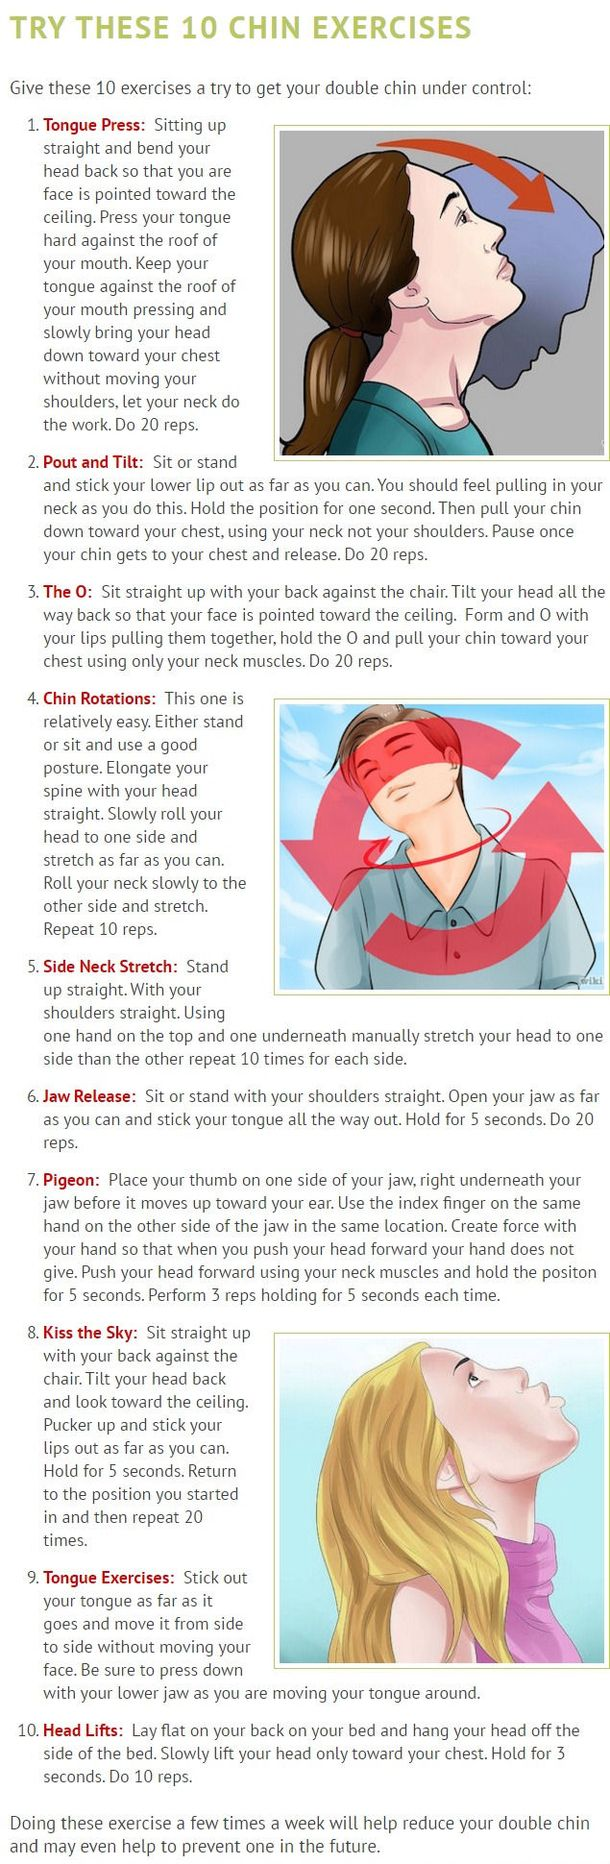 Want To Get Rid Of Stubborn Double Chin And Neck Fat? These 10 Easy Exercises Will Eliminate It In No Time! video health life hacks videos viral viral videos viral right now health videos